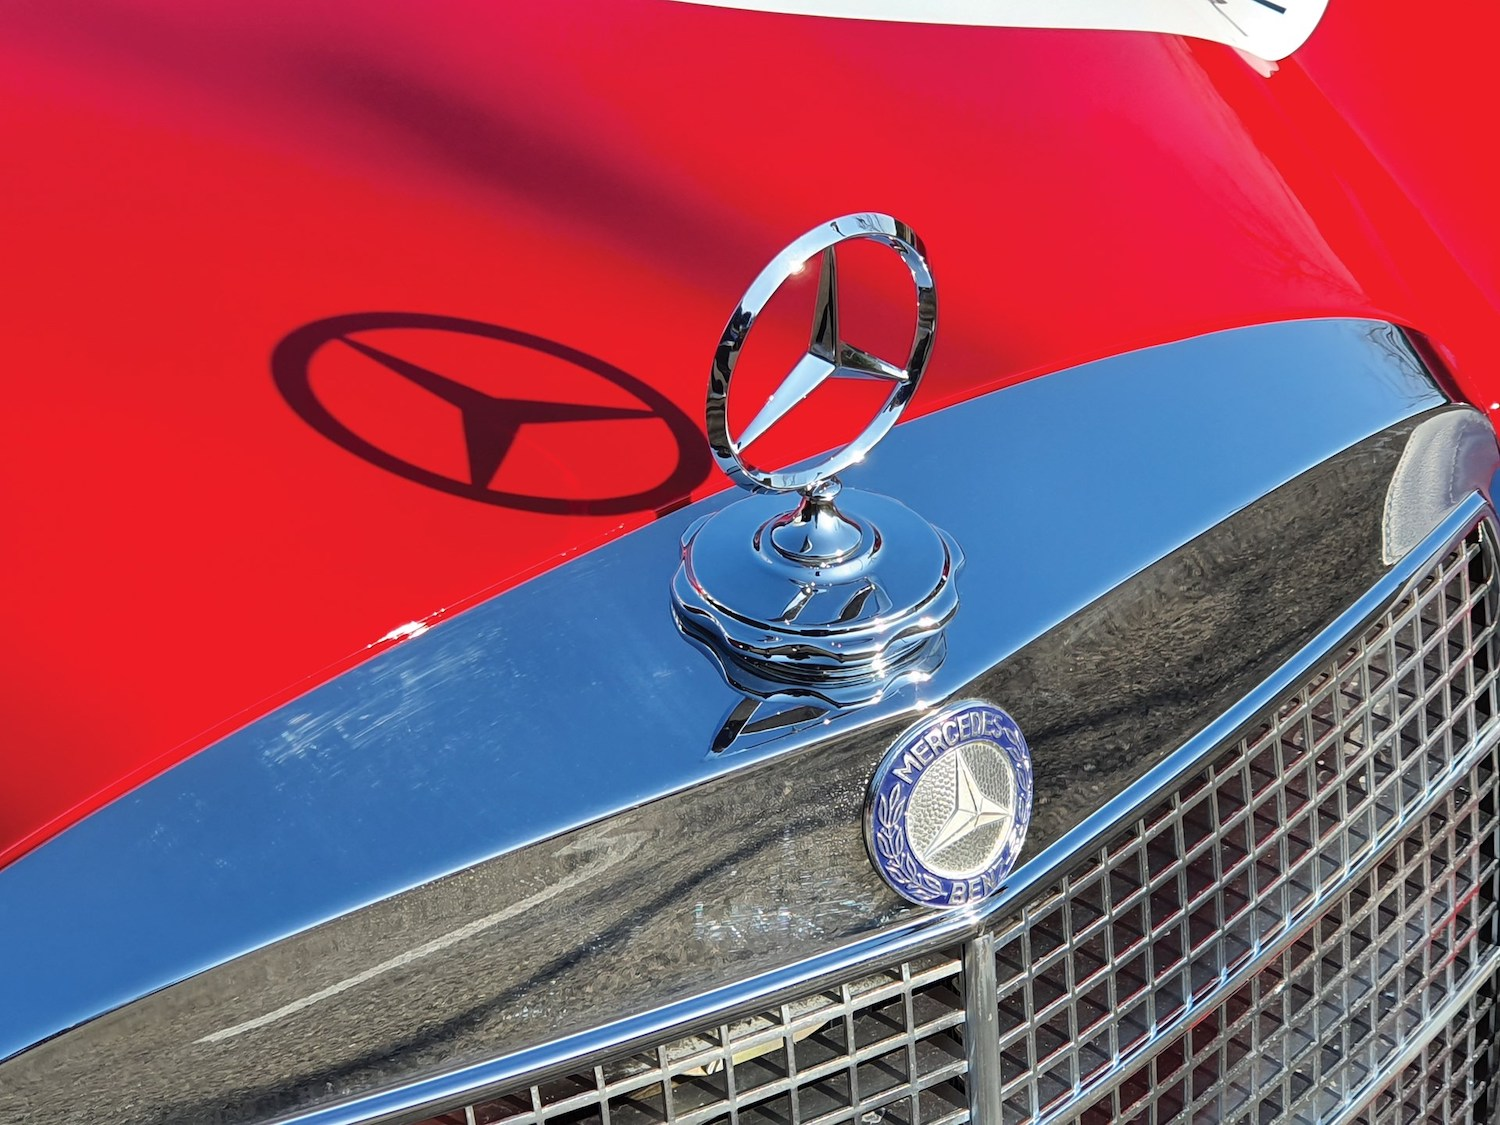 1969 Mercedes-Benz 300 SEL 6.3 'Red Pig' Replica front detail closeup